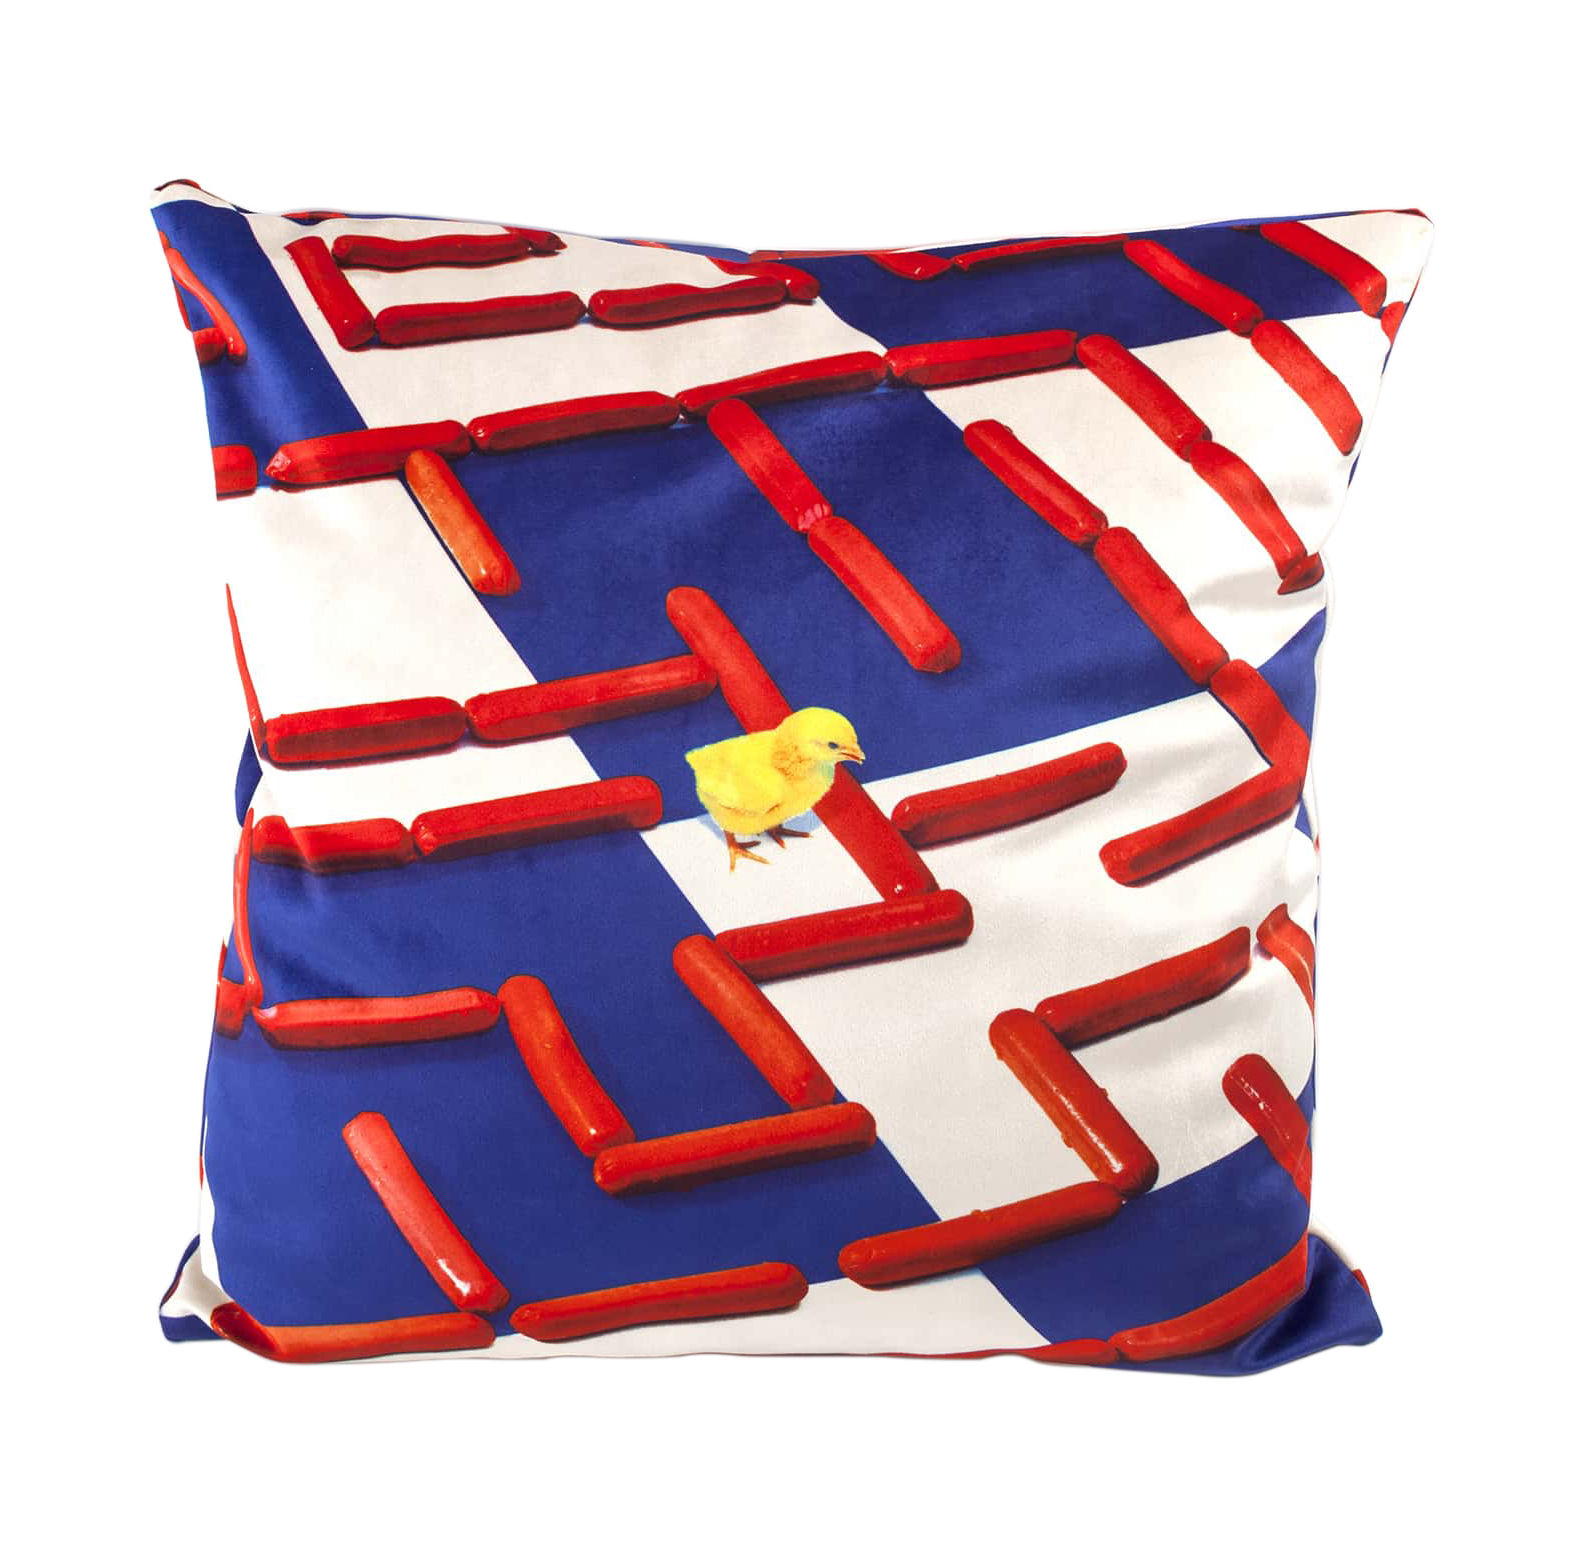 Decoration - Cushions & Poufs - Toiletpaper Cushion - / Labyrinthe - 50 x 50 cm by Seletti - Labyrinthe / Multicolore - Feathers, Polyester fabric